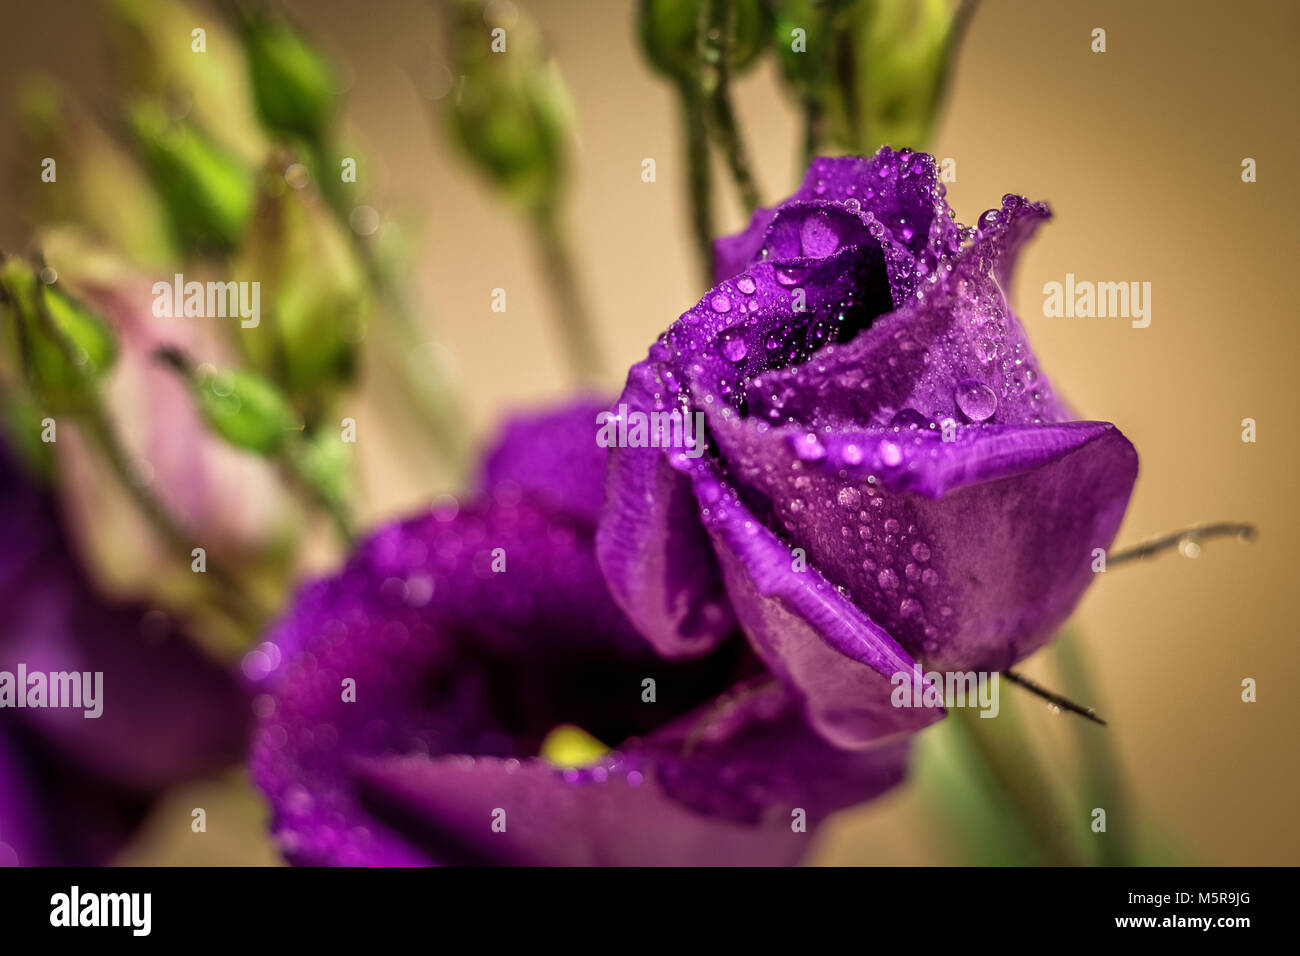 Lisianthus (eustoma/prairie gentian) covered with water drops macro close up shot - Stock Image